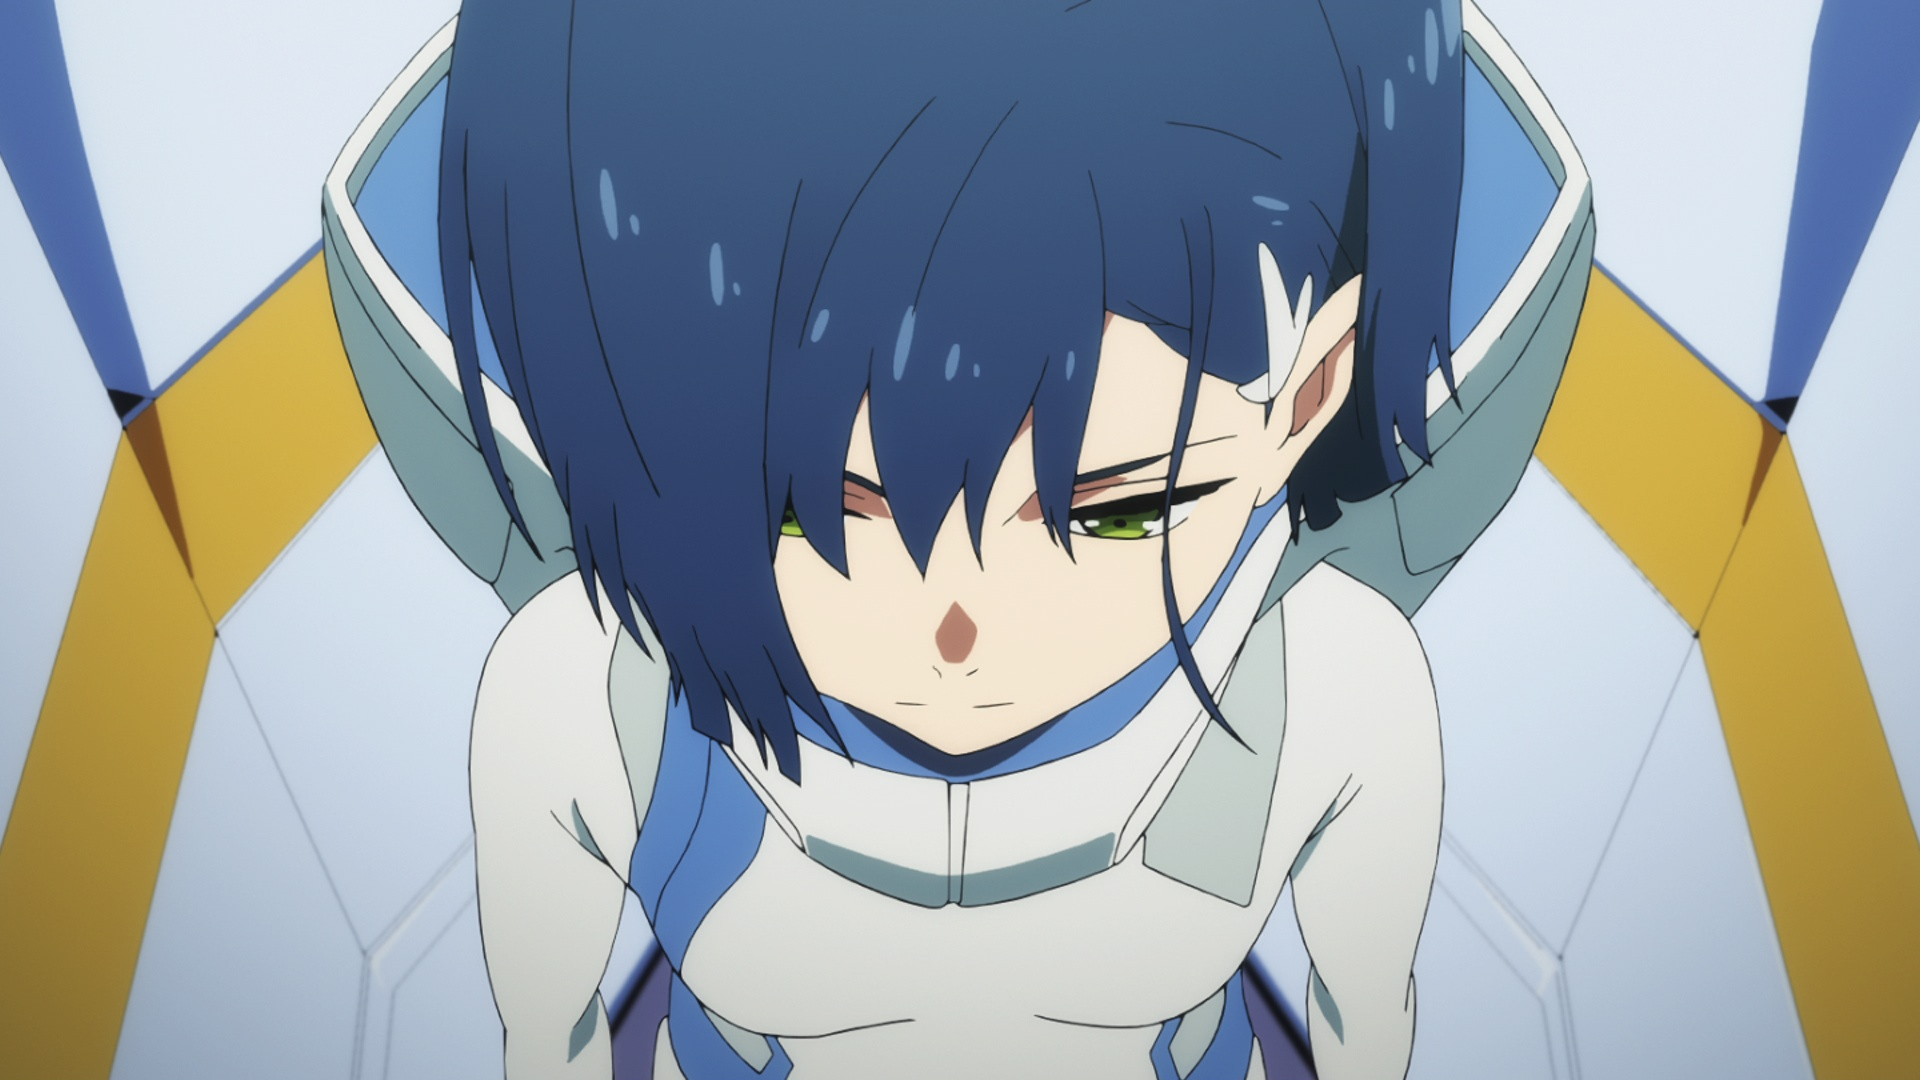 Watch Darling In The Franxx Season 1 Episode 2 Anime On